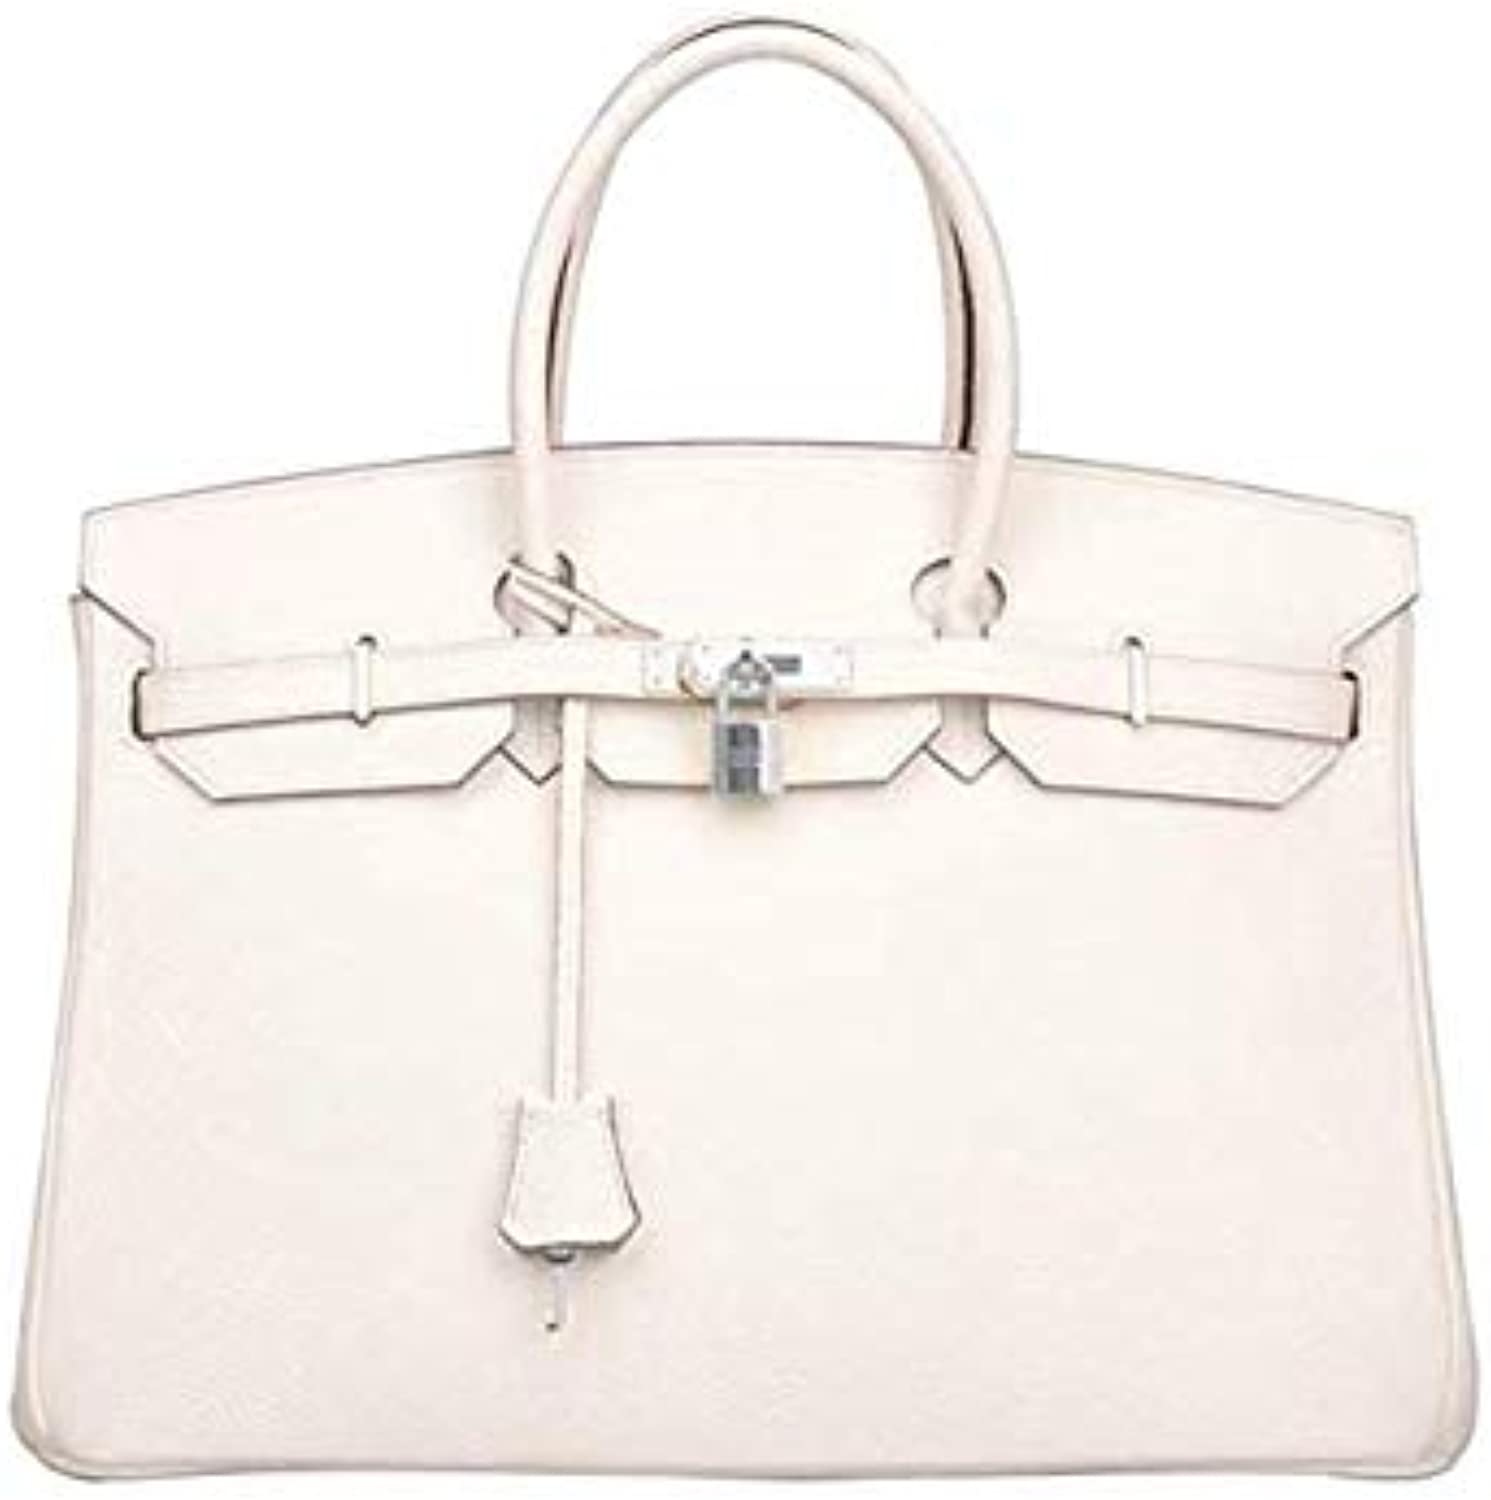 Myla Genuine Leather Womens Boutique Pedlock Top Handle Luxury Bag (White)